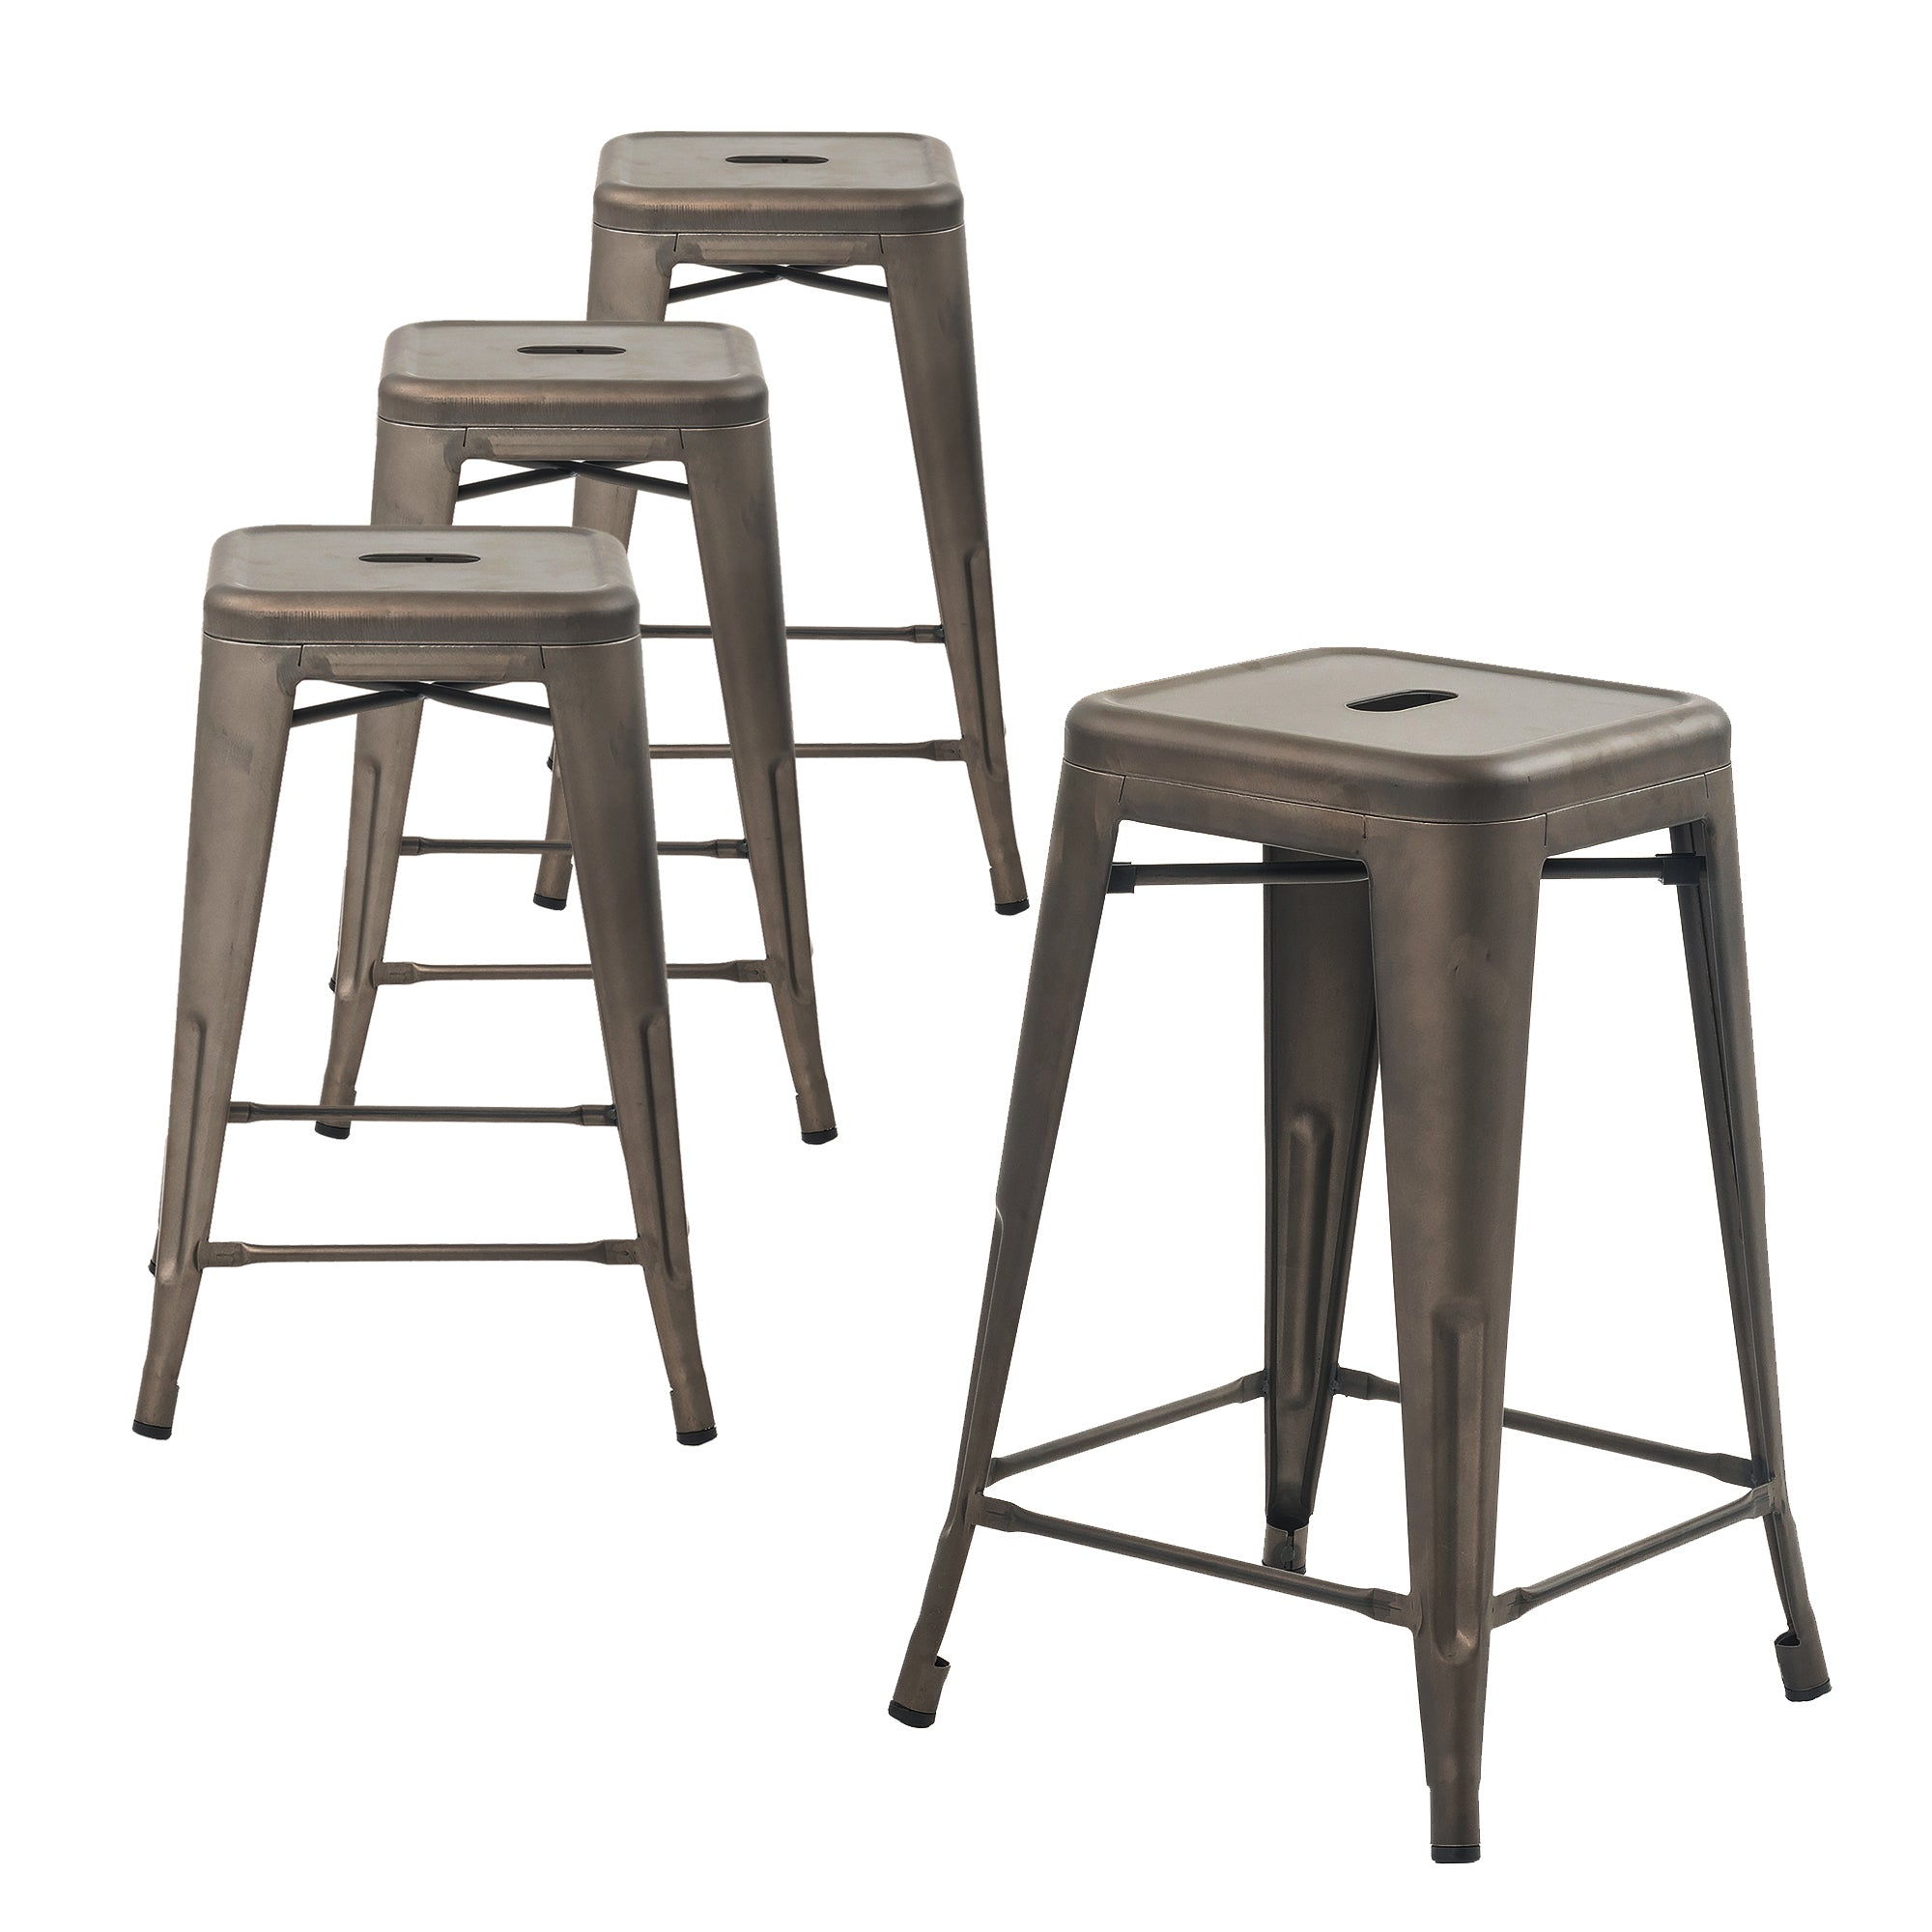 Buschman Set Of 4 Bronze 24 Inch Counter Height Metal Bar Stools